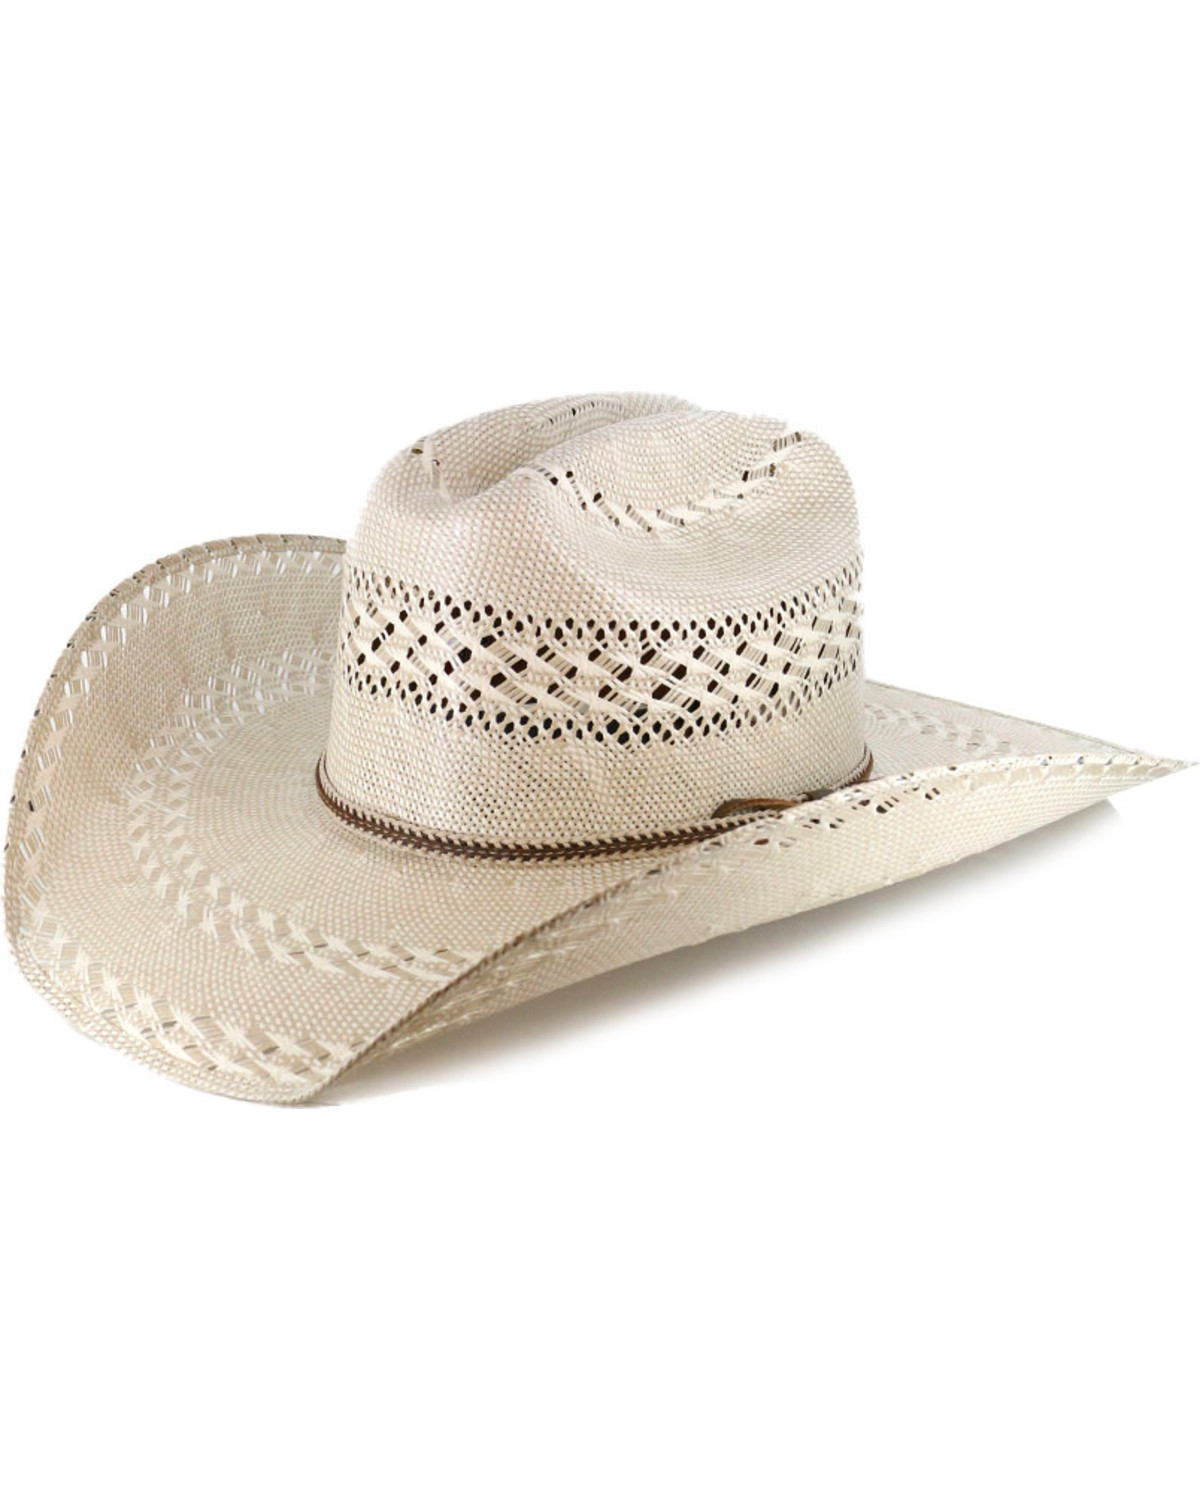 Justin Men s Bent Rail Garret Two Tone Straw Cowboy Hat  b8c256ba23e6